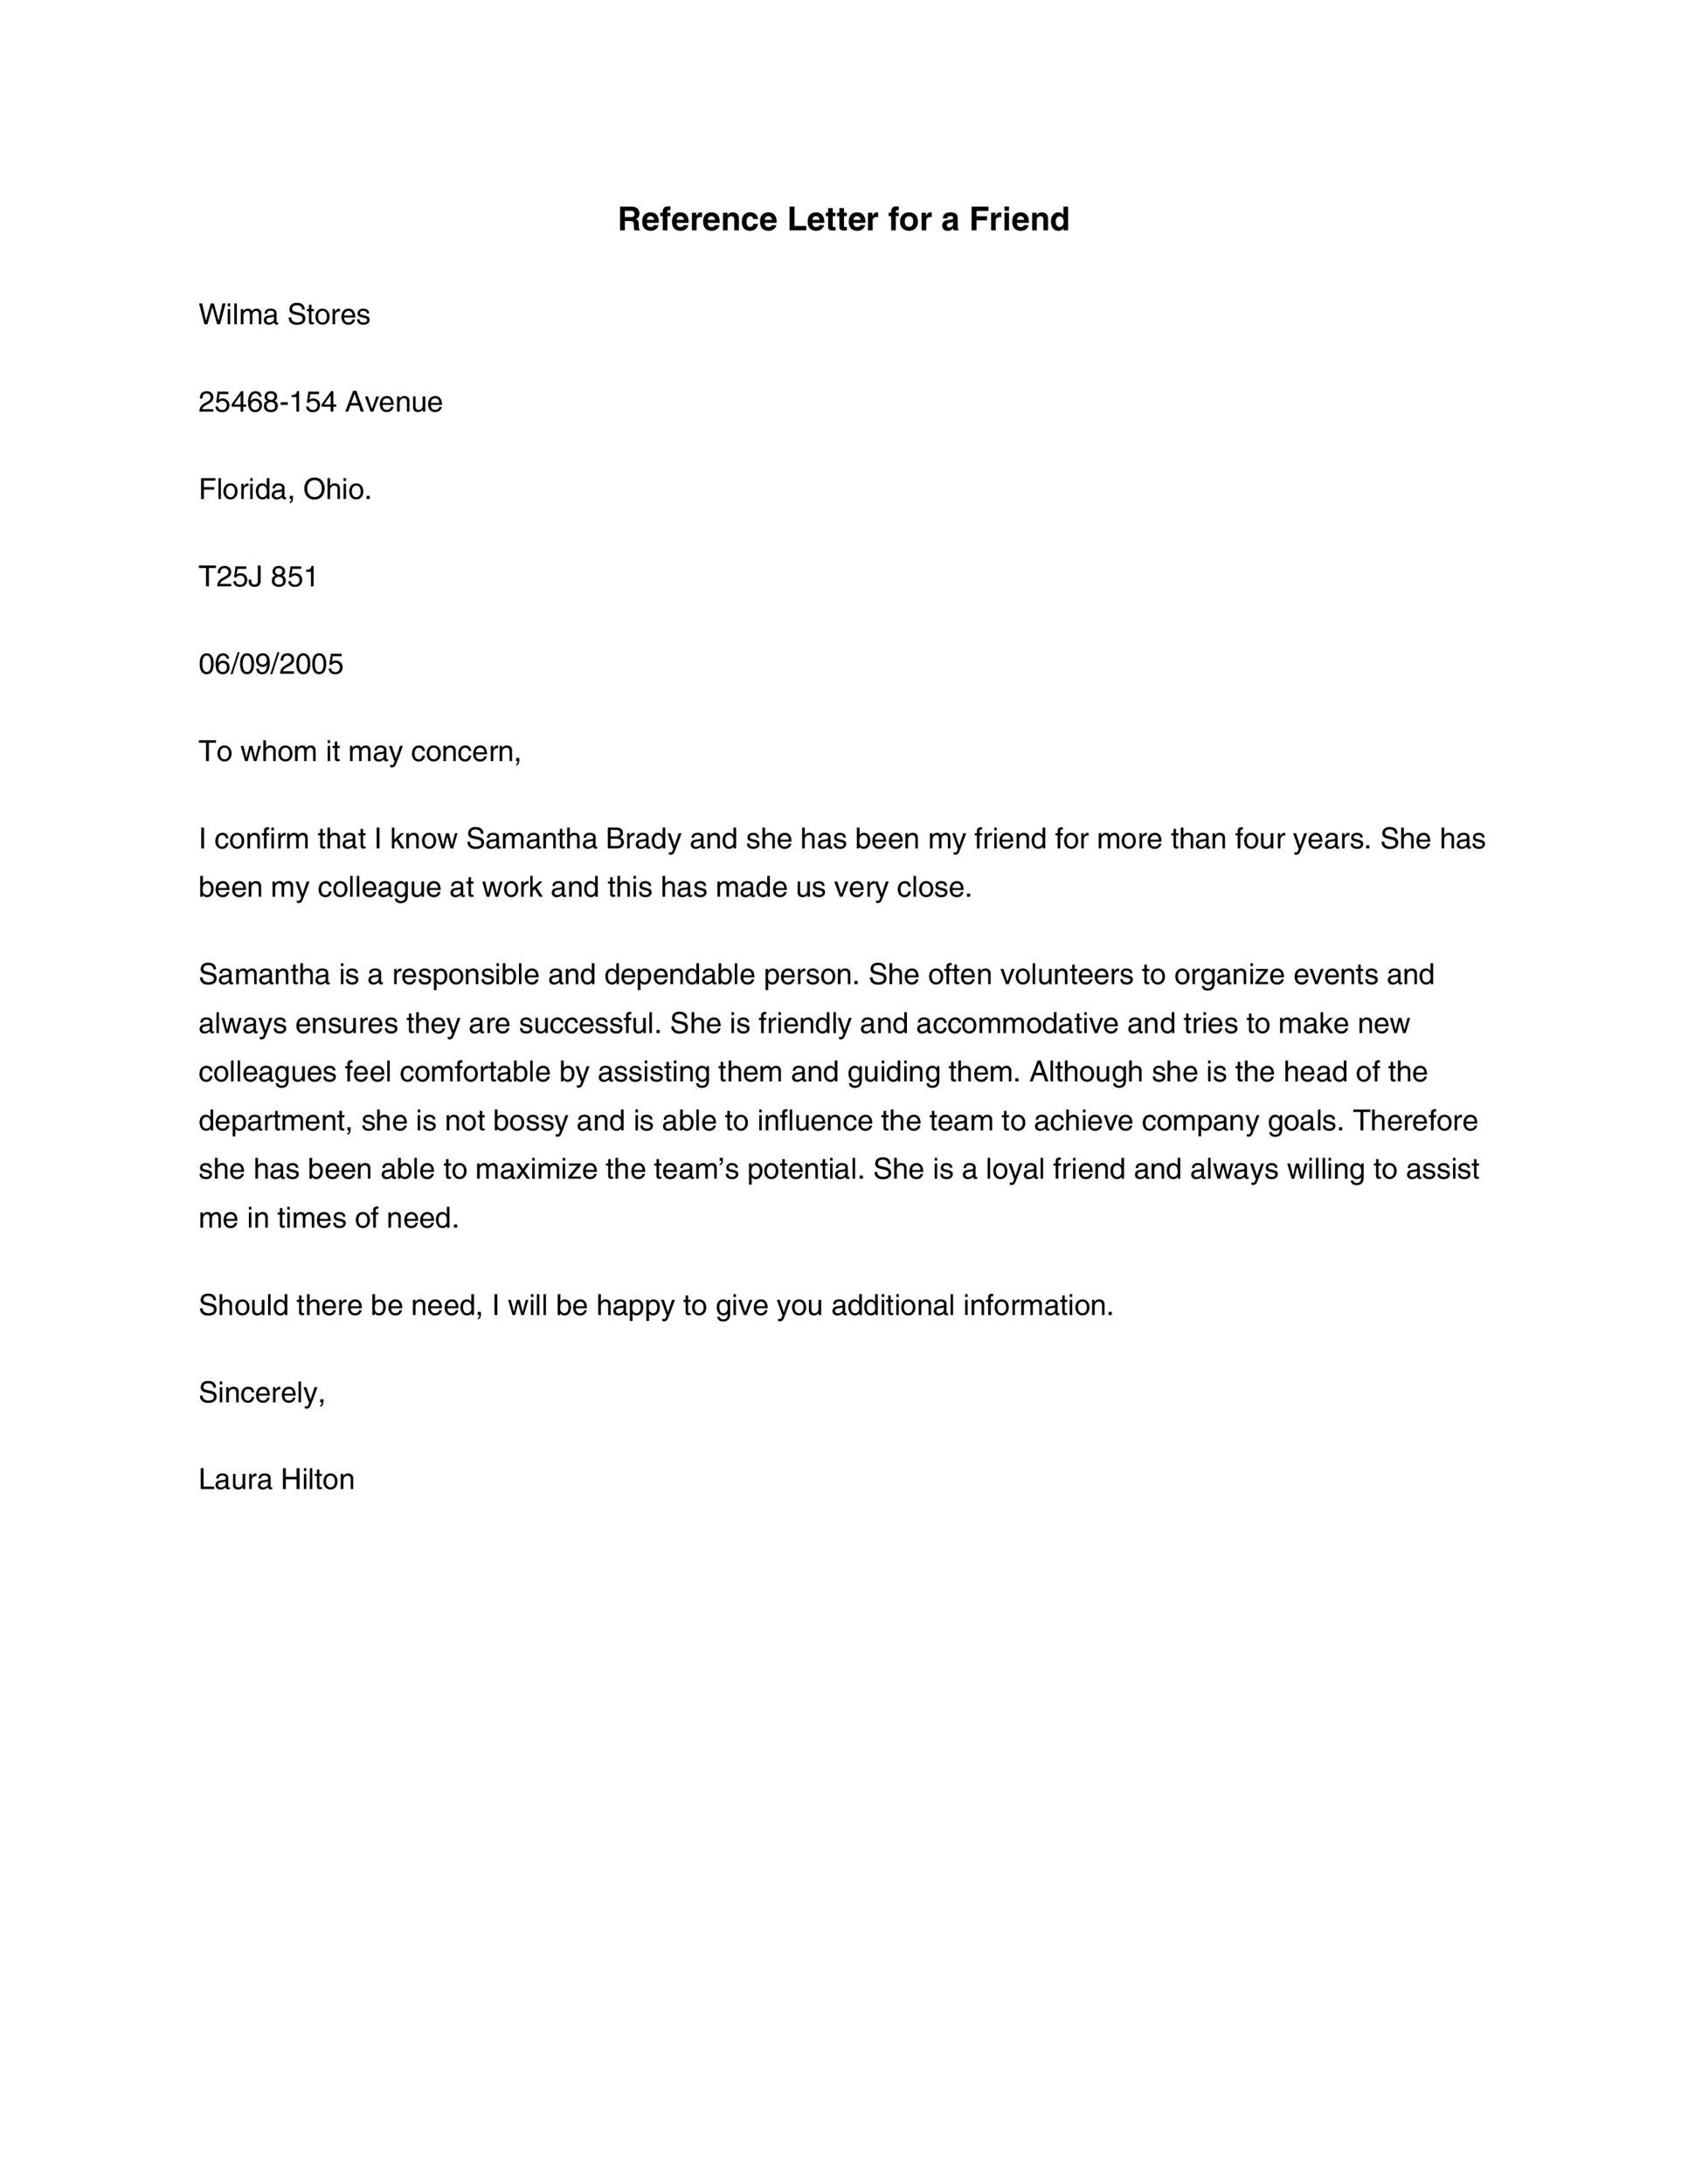 Write Letter To A Best Friend. Printable Reference letter 22 40  Awesome Personal Character Letter Templates FREE